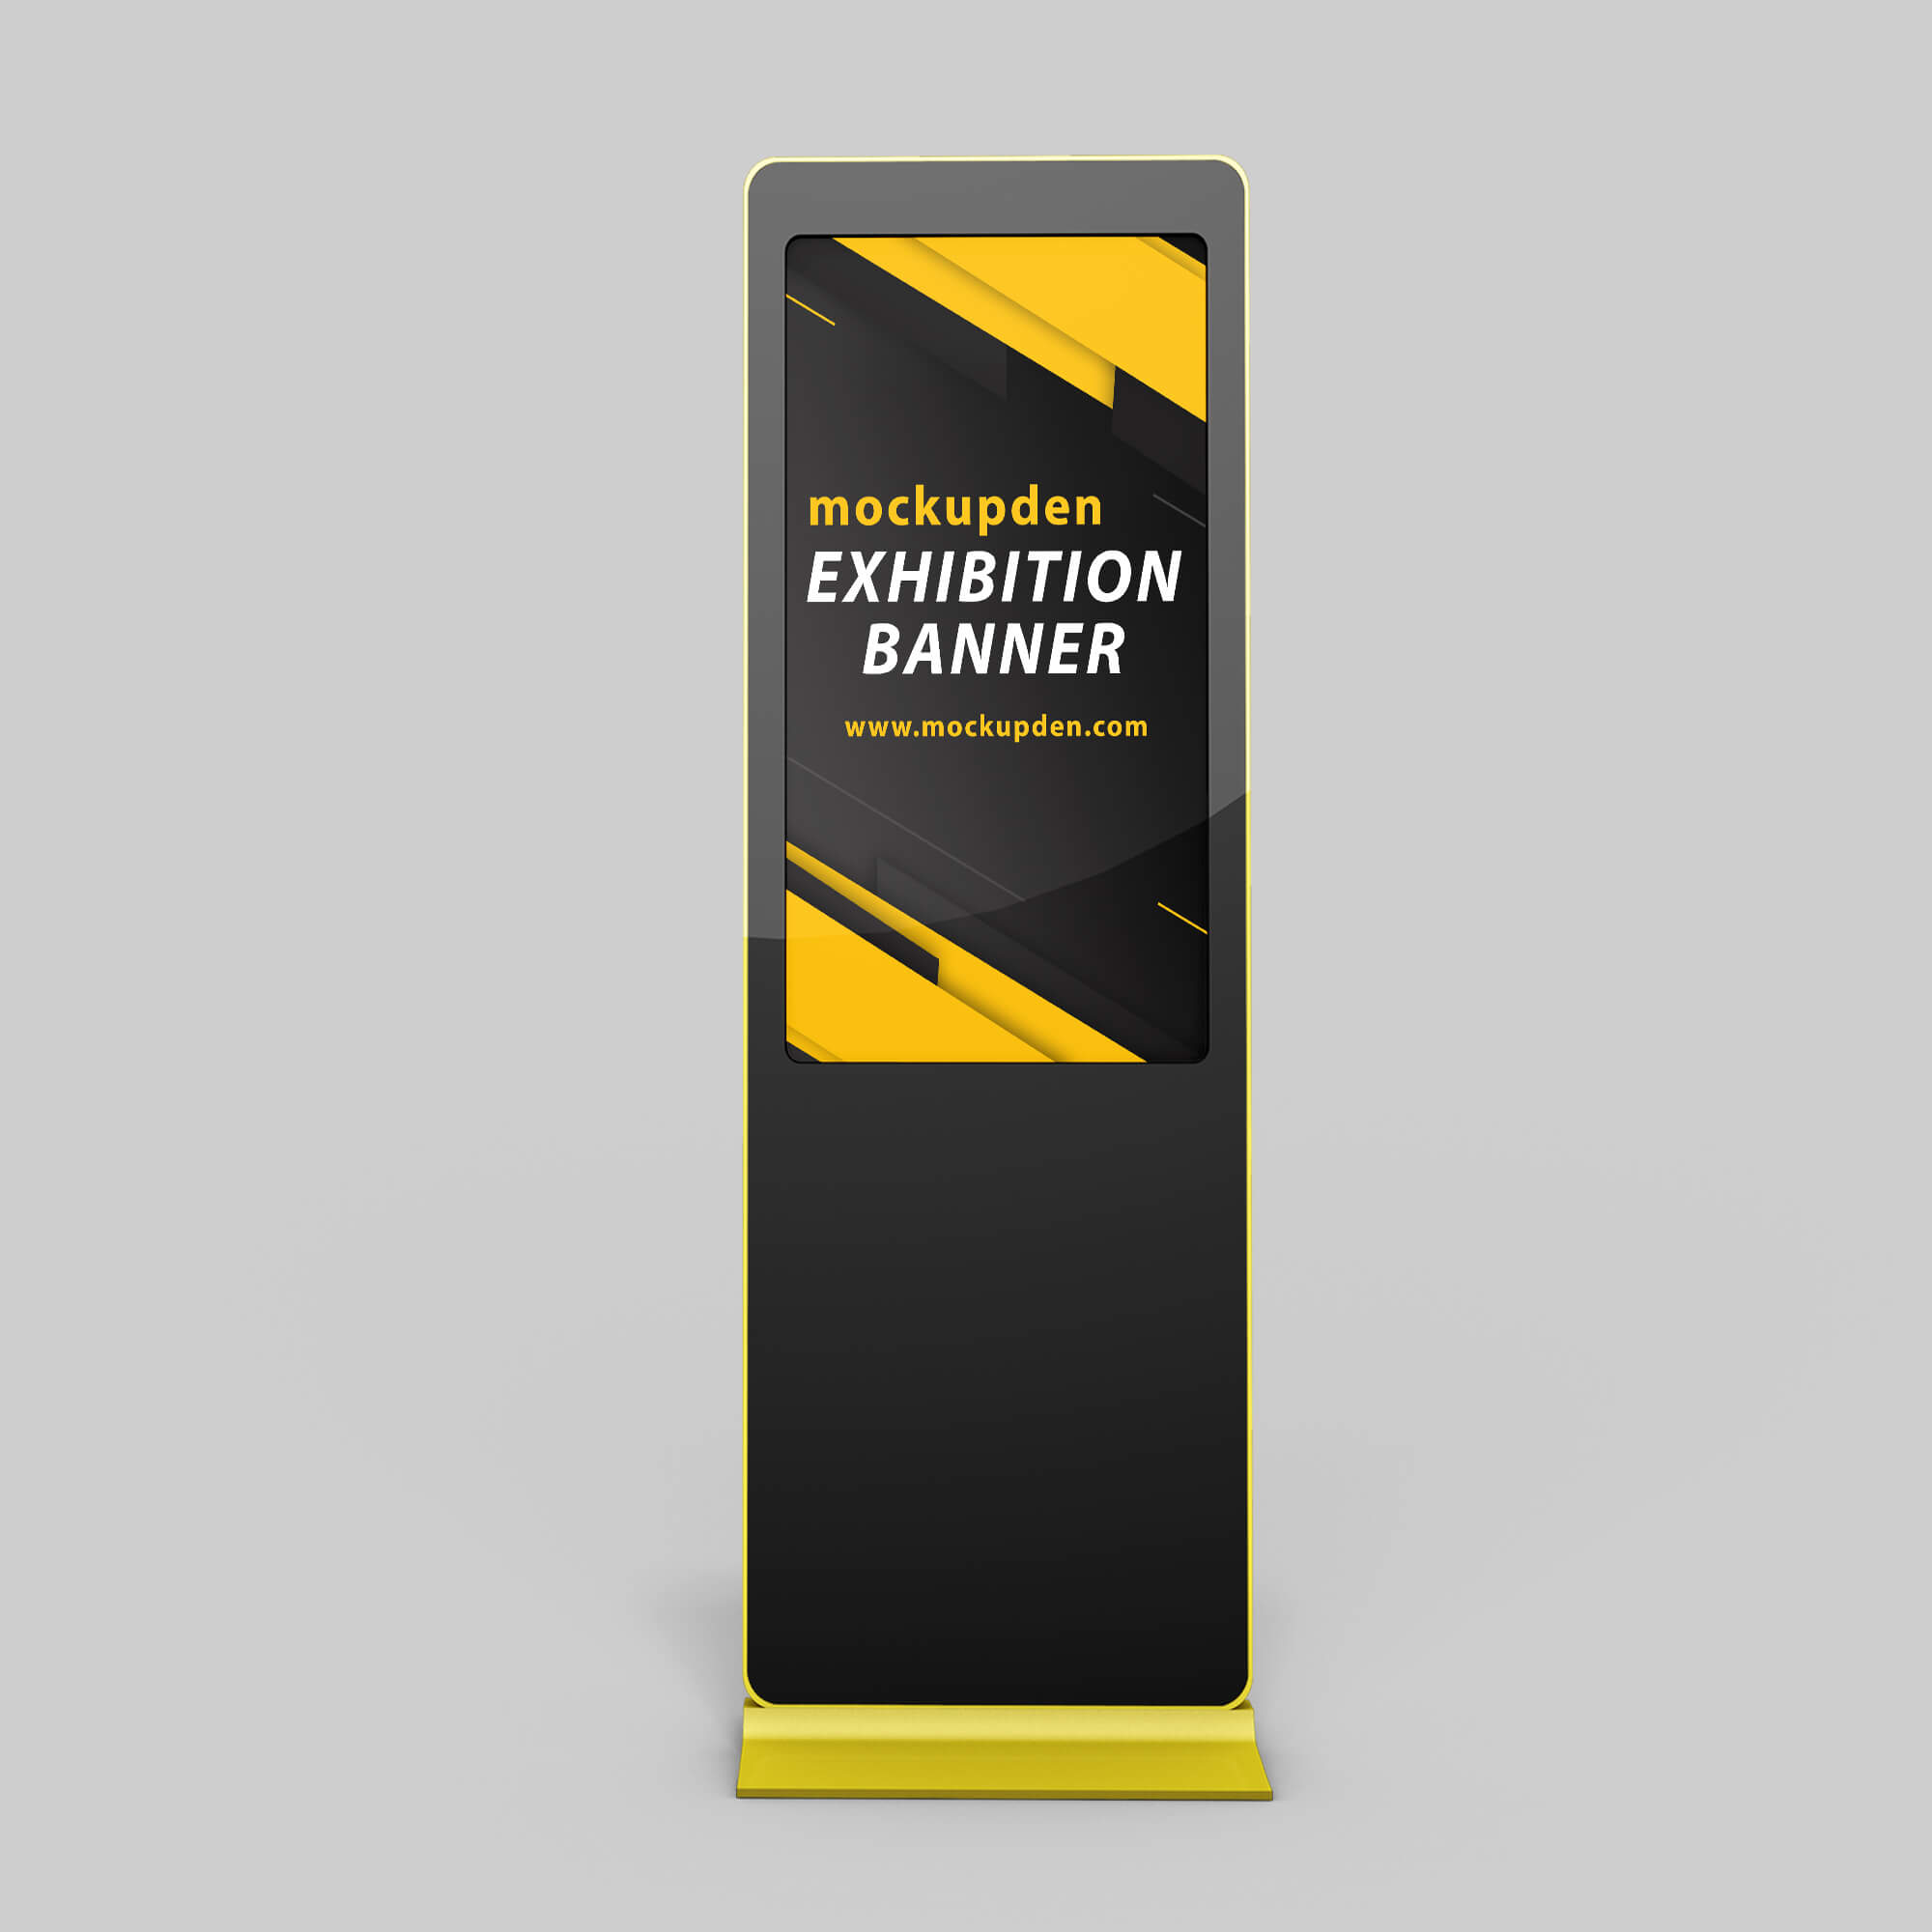 Design Free Exhibition Banner Mockup PSD Template